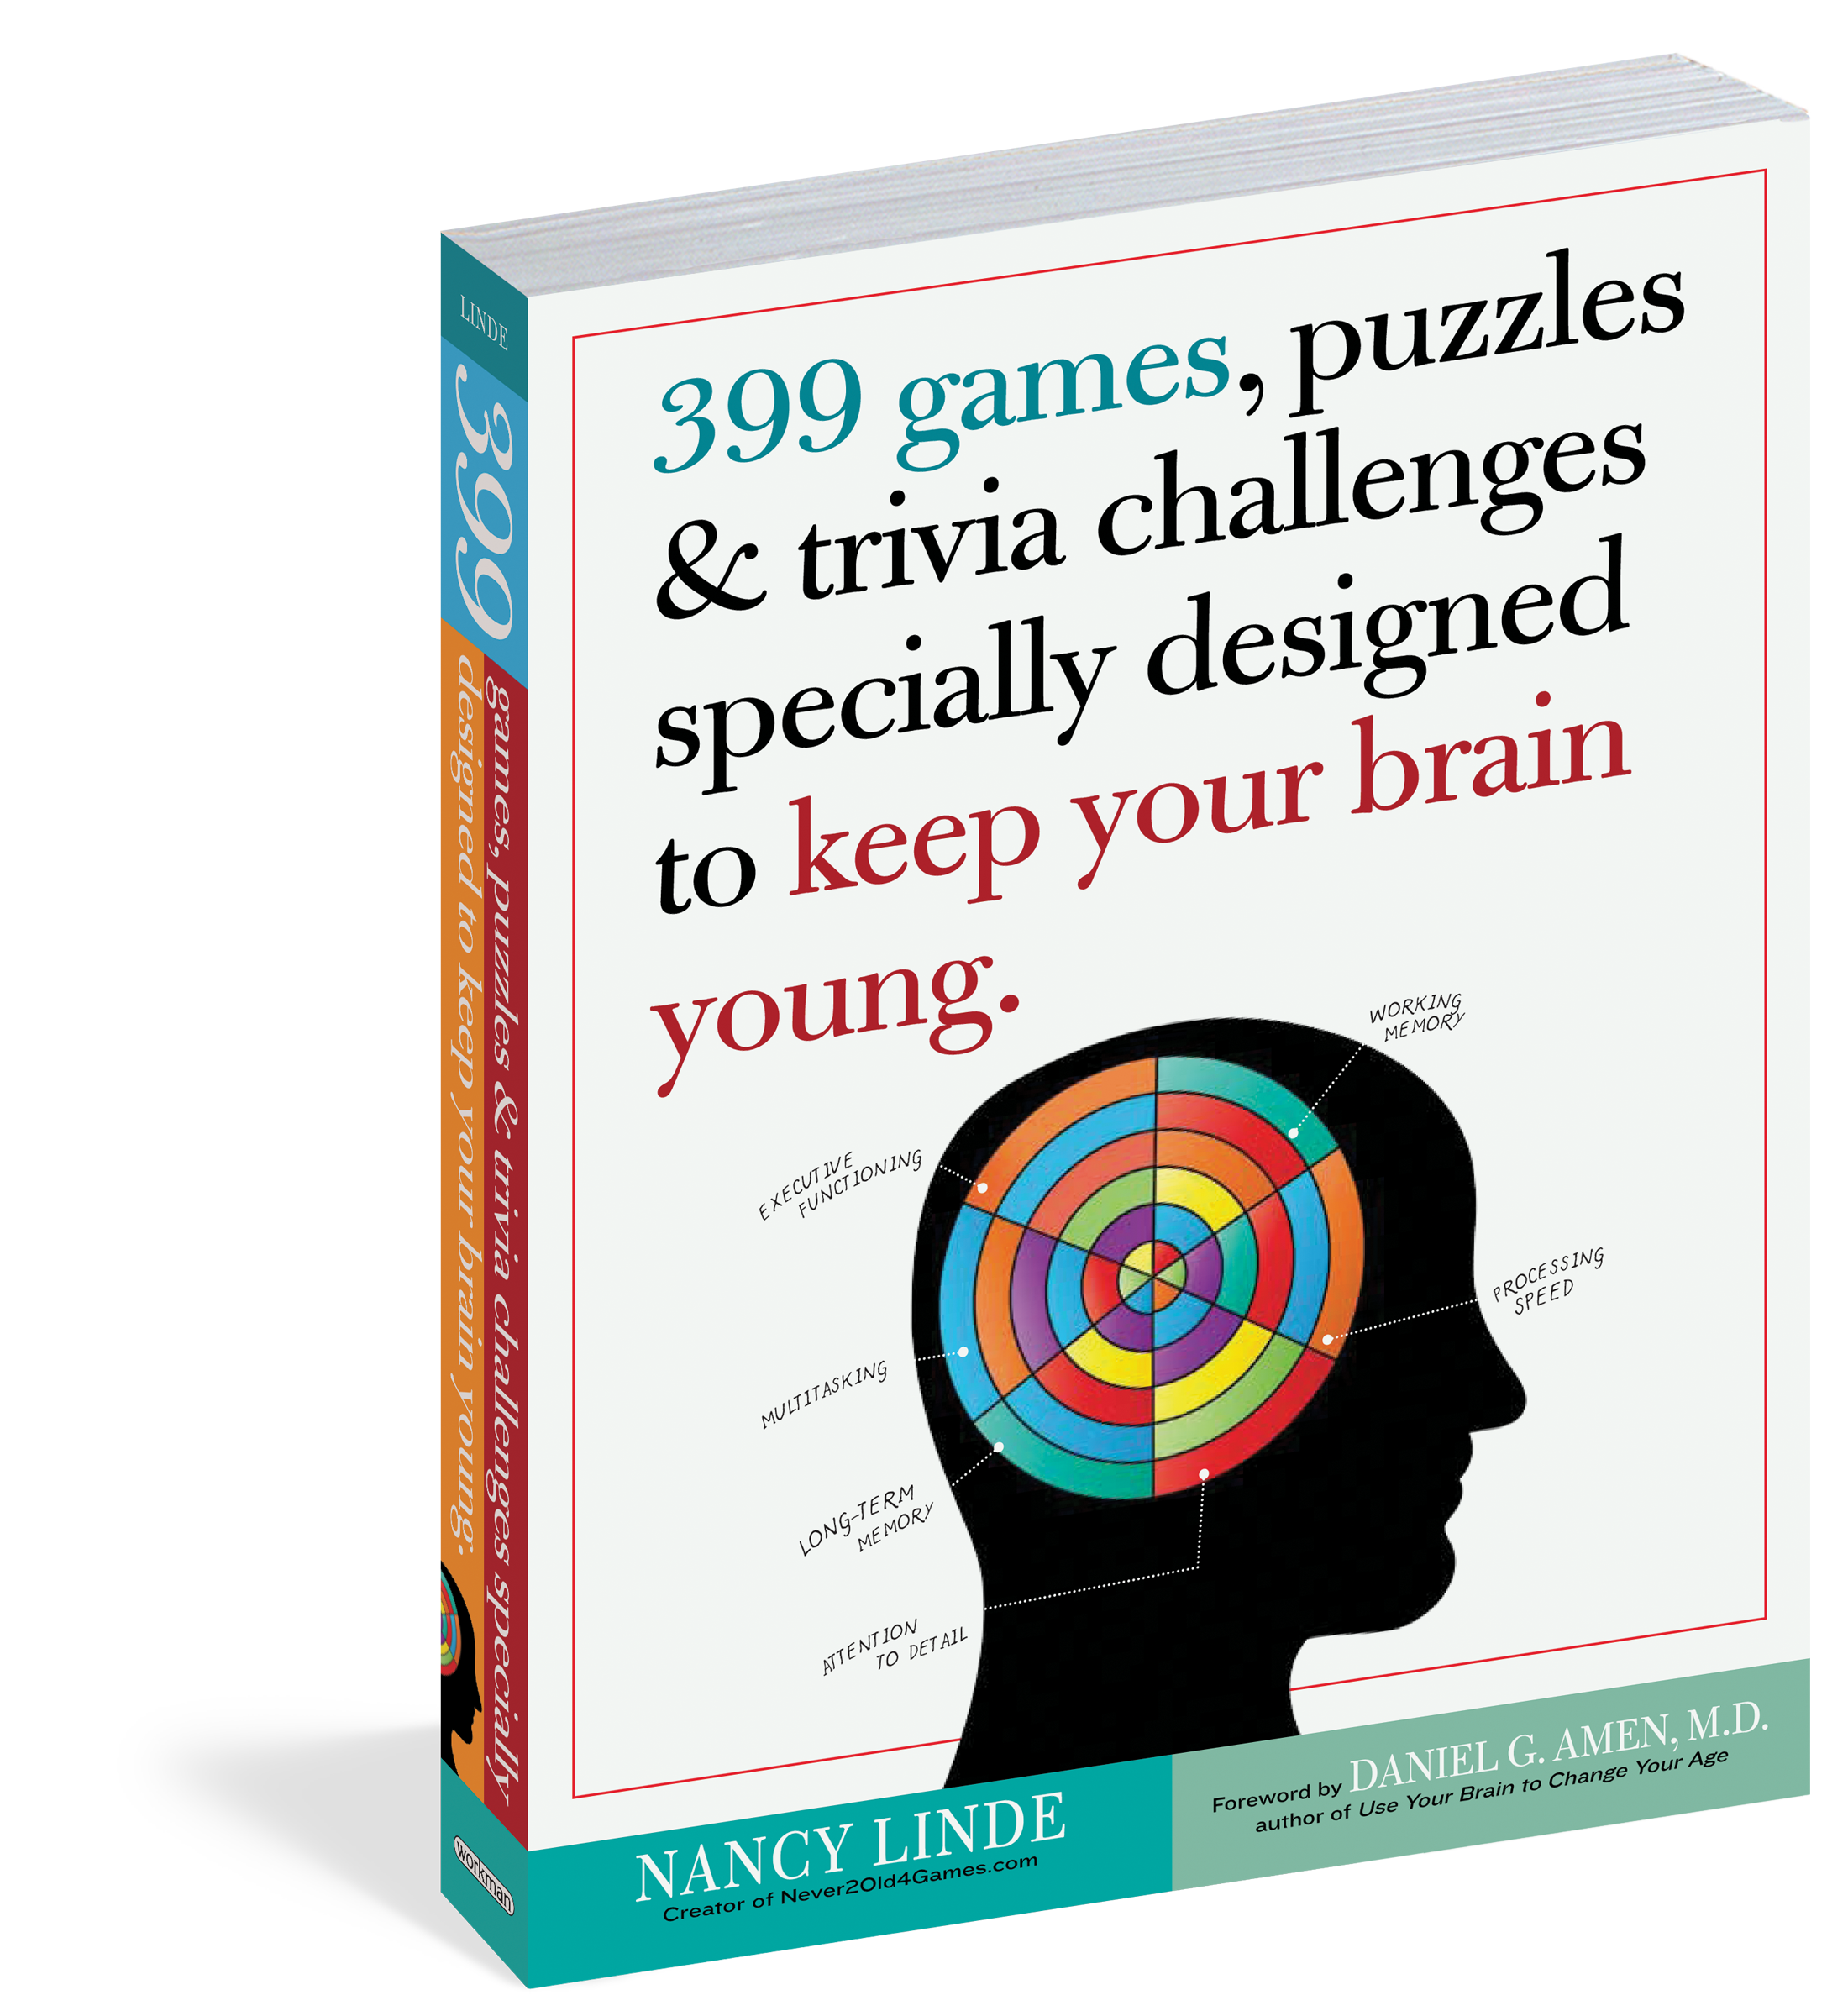 399 Games, Puzzles & Trivia Challenges Specially Designed to Keep